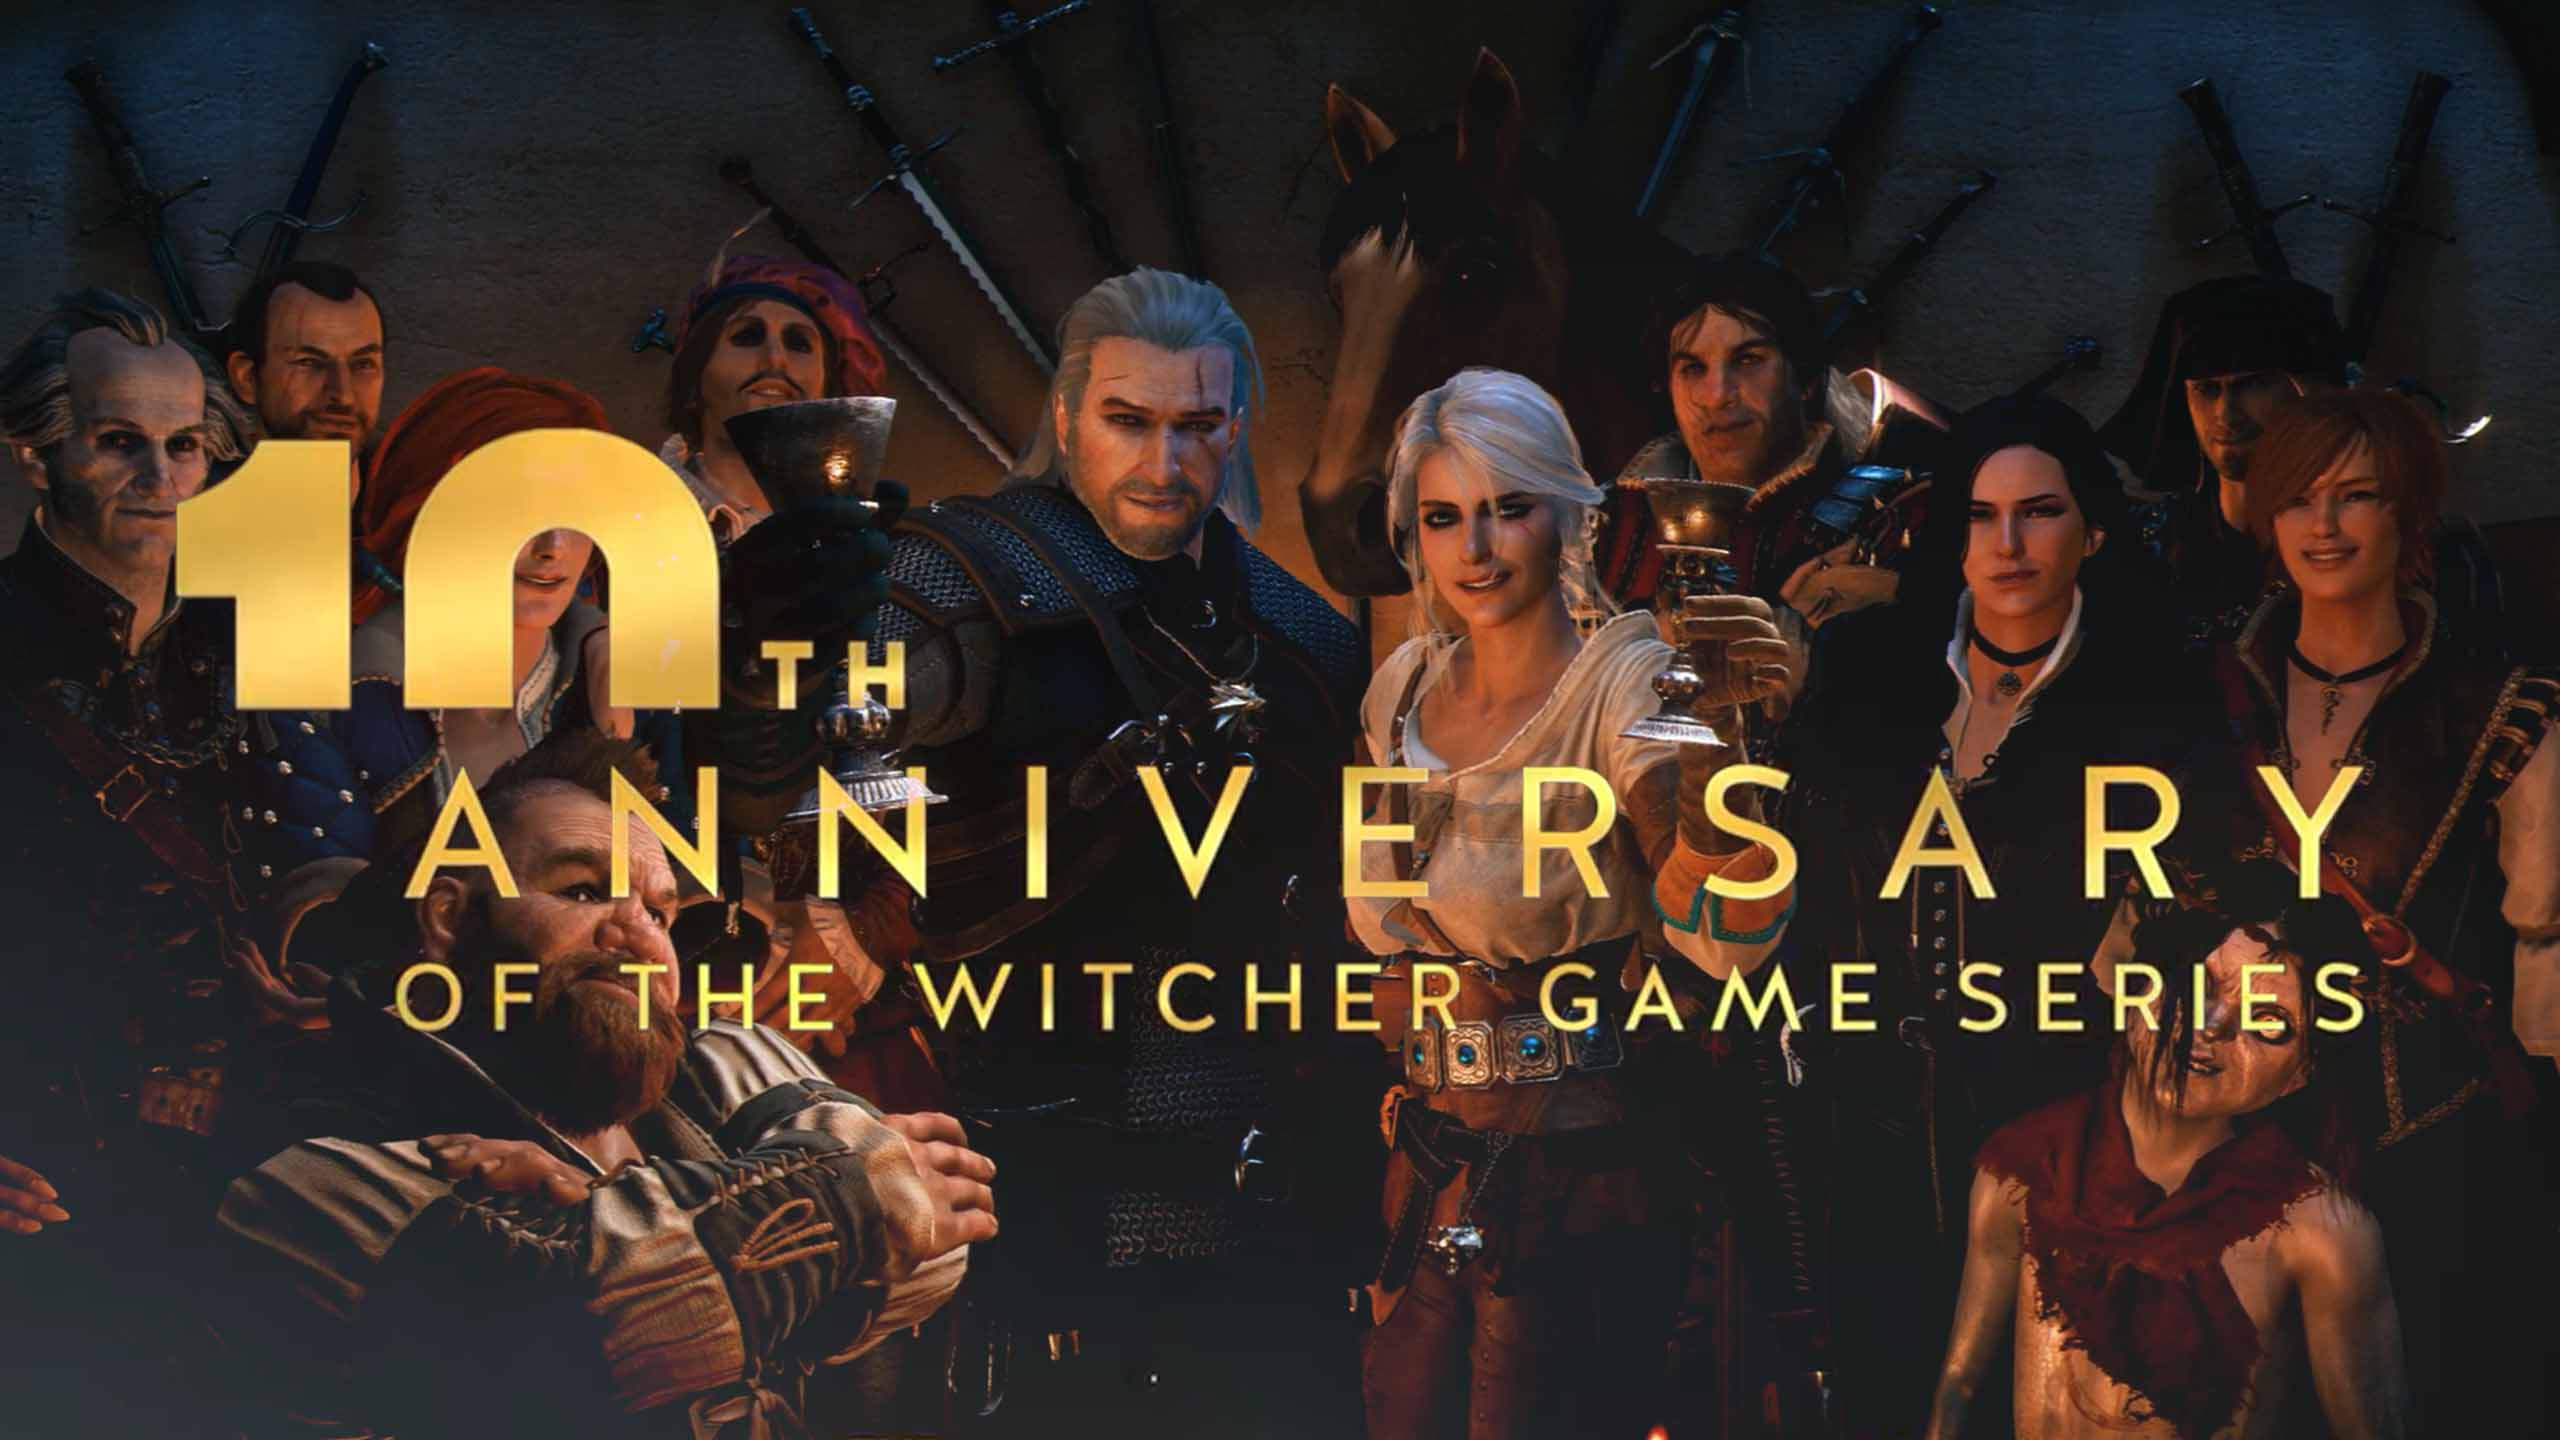 Monster Hunter World Beta Monster >> Celebrate with Geralt in The Witcher's 10th Anniversary | Fextralife